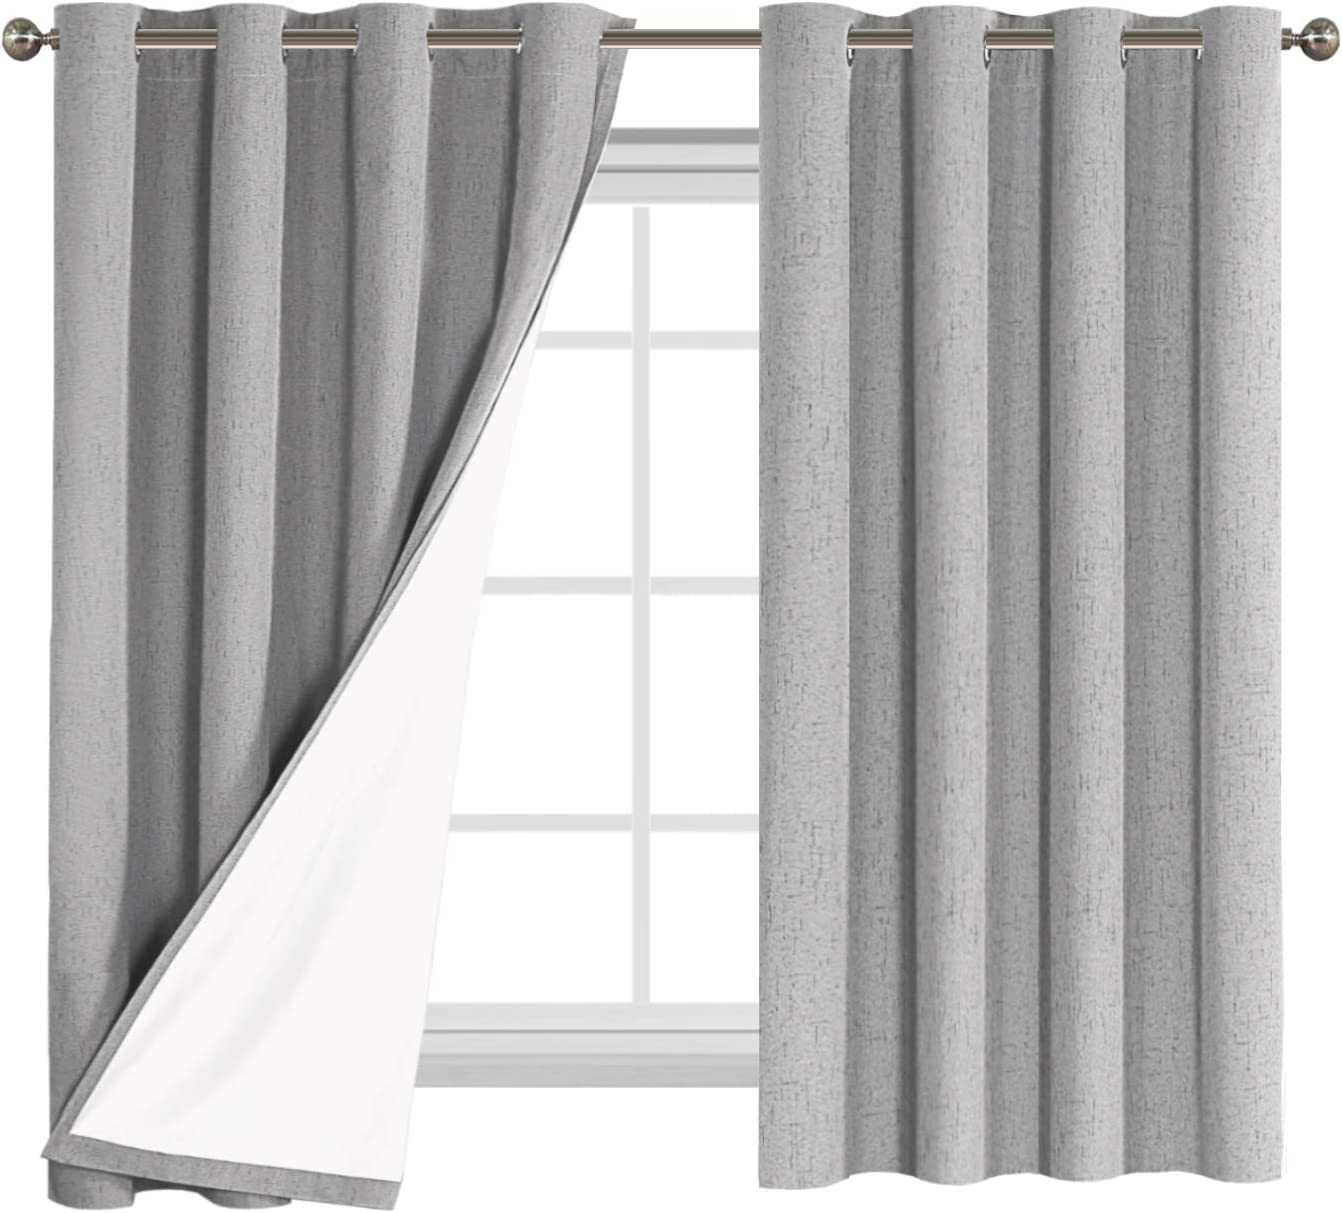 Flamingo P Textured Linen 100% Blackout Curtains 63 Inch Length 2 Panles Set Burlap Thermal Insulated Full Light Blocking Primitive Curtain Drapes Draperies for Bedroom, Dove with White Liner